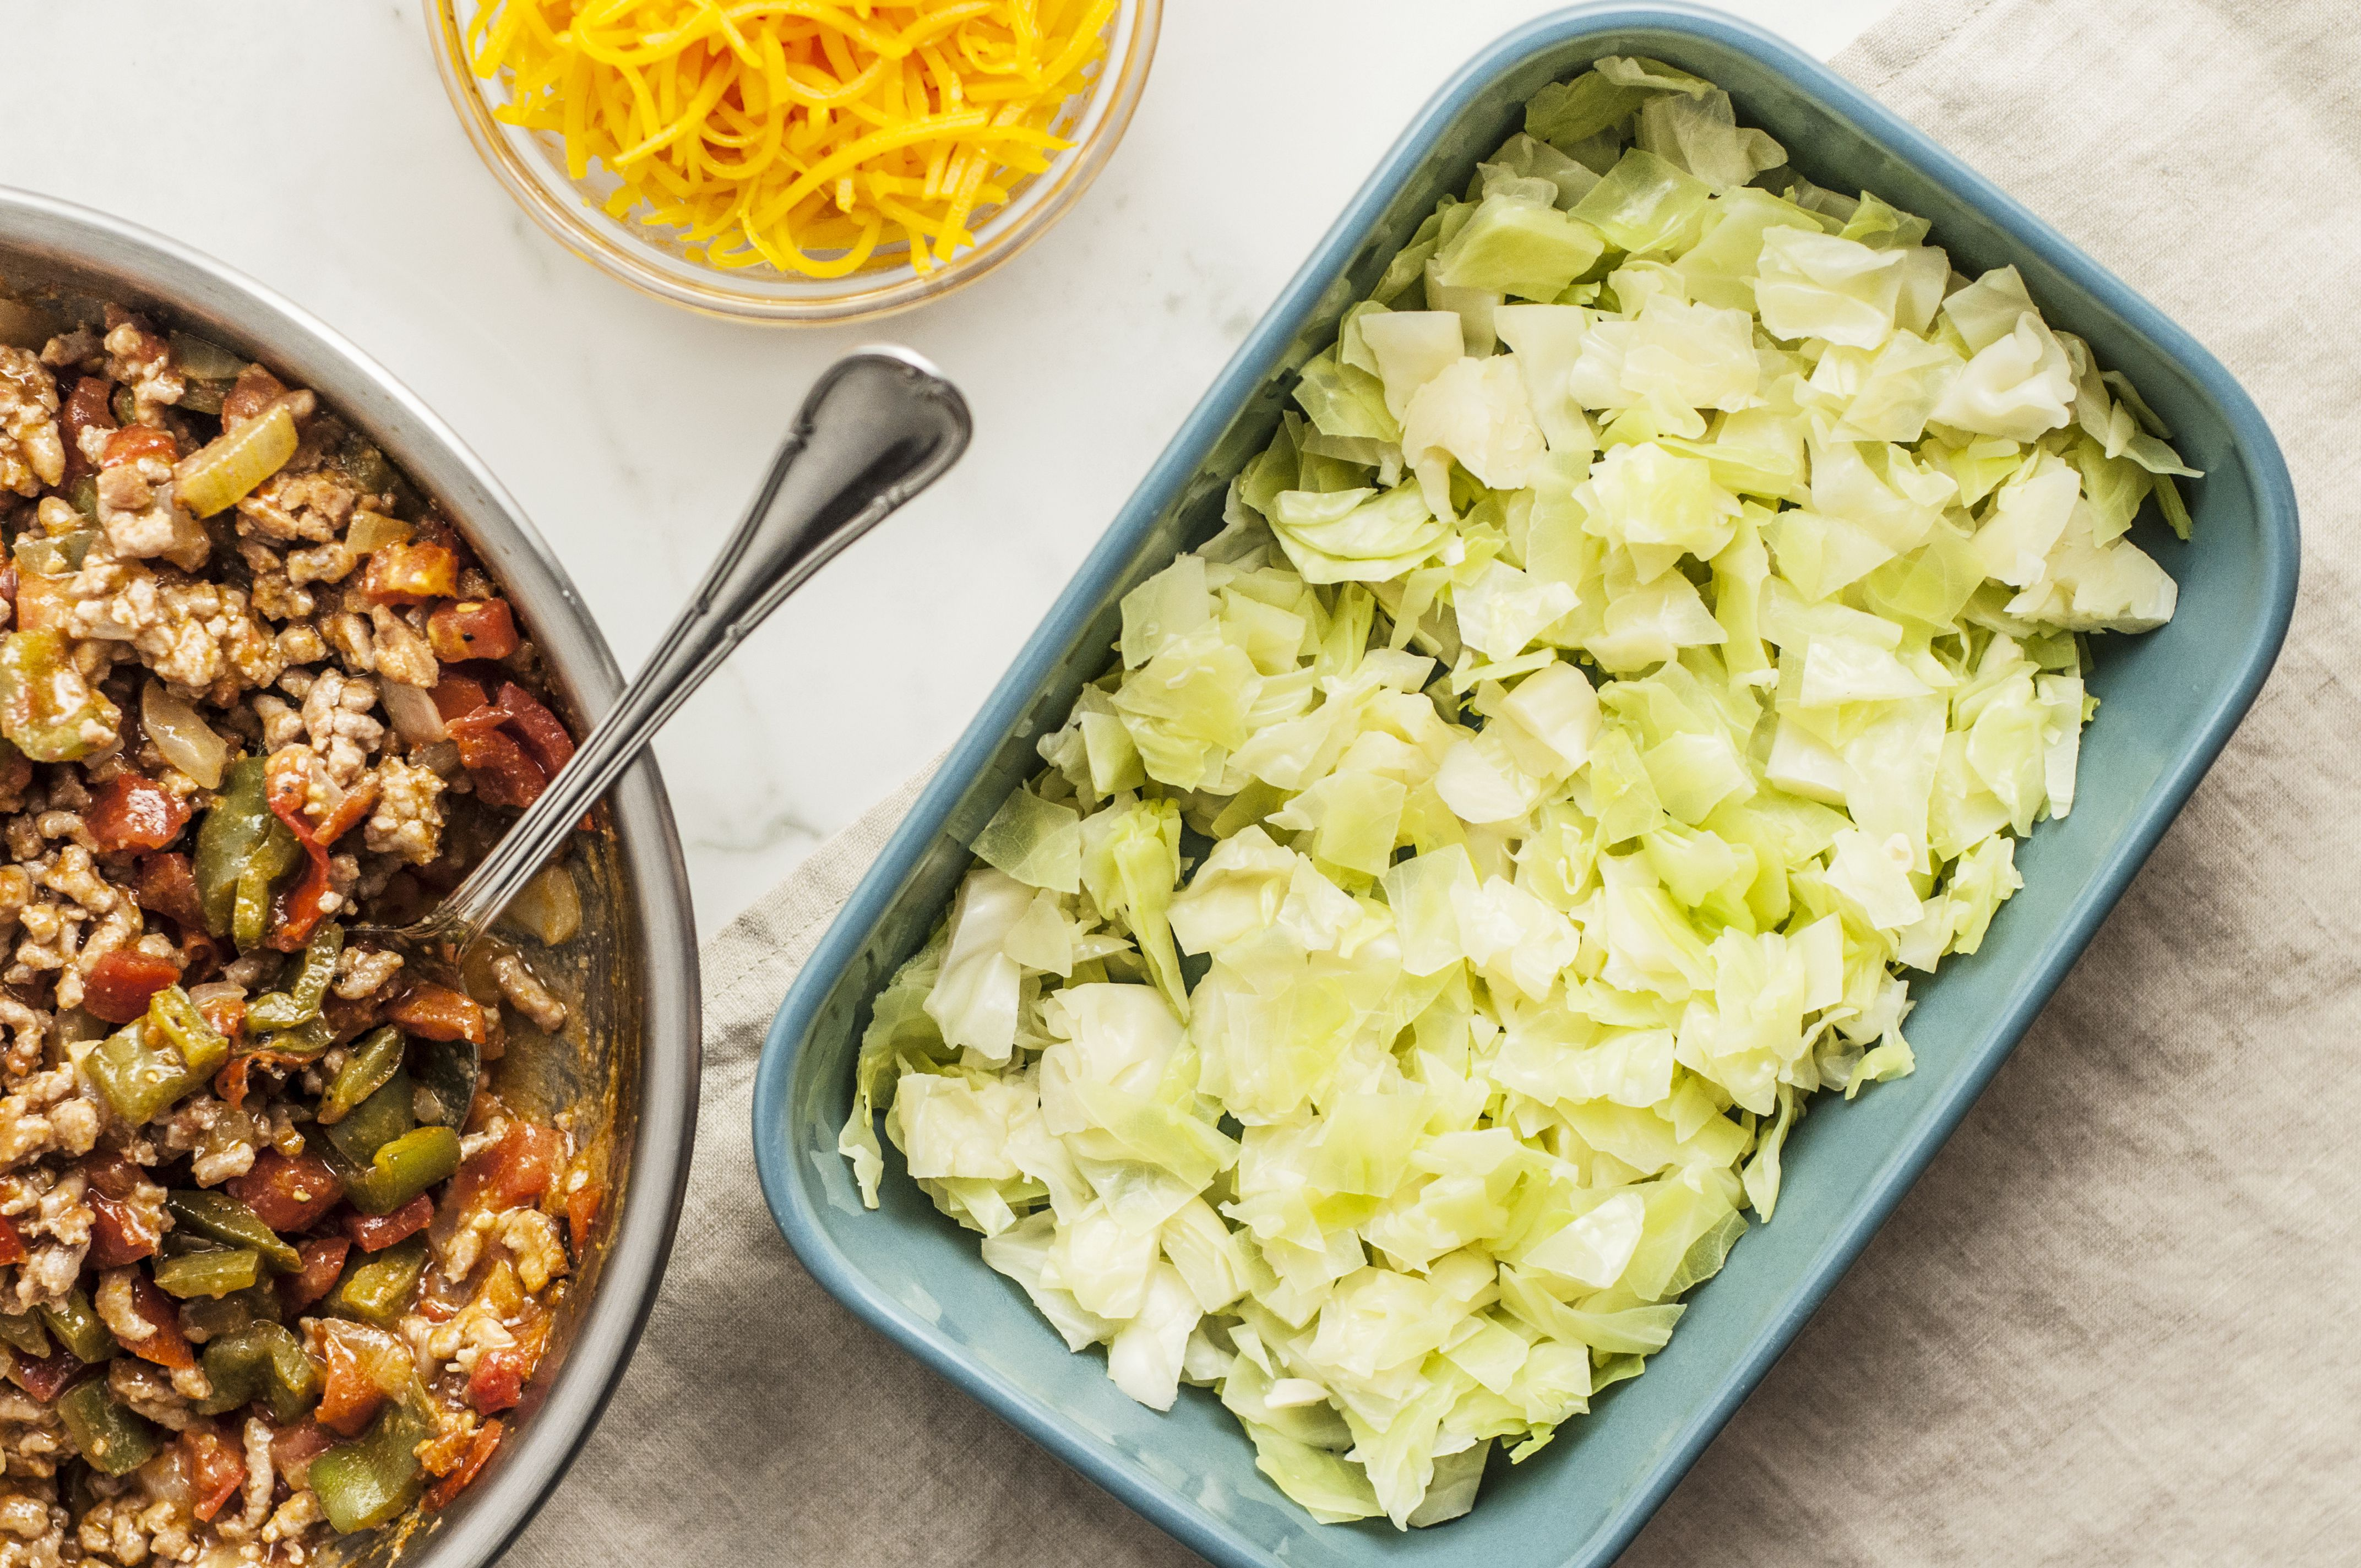 Cooked, drained cabbage in a casserole dish